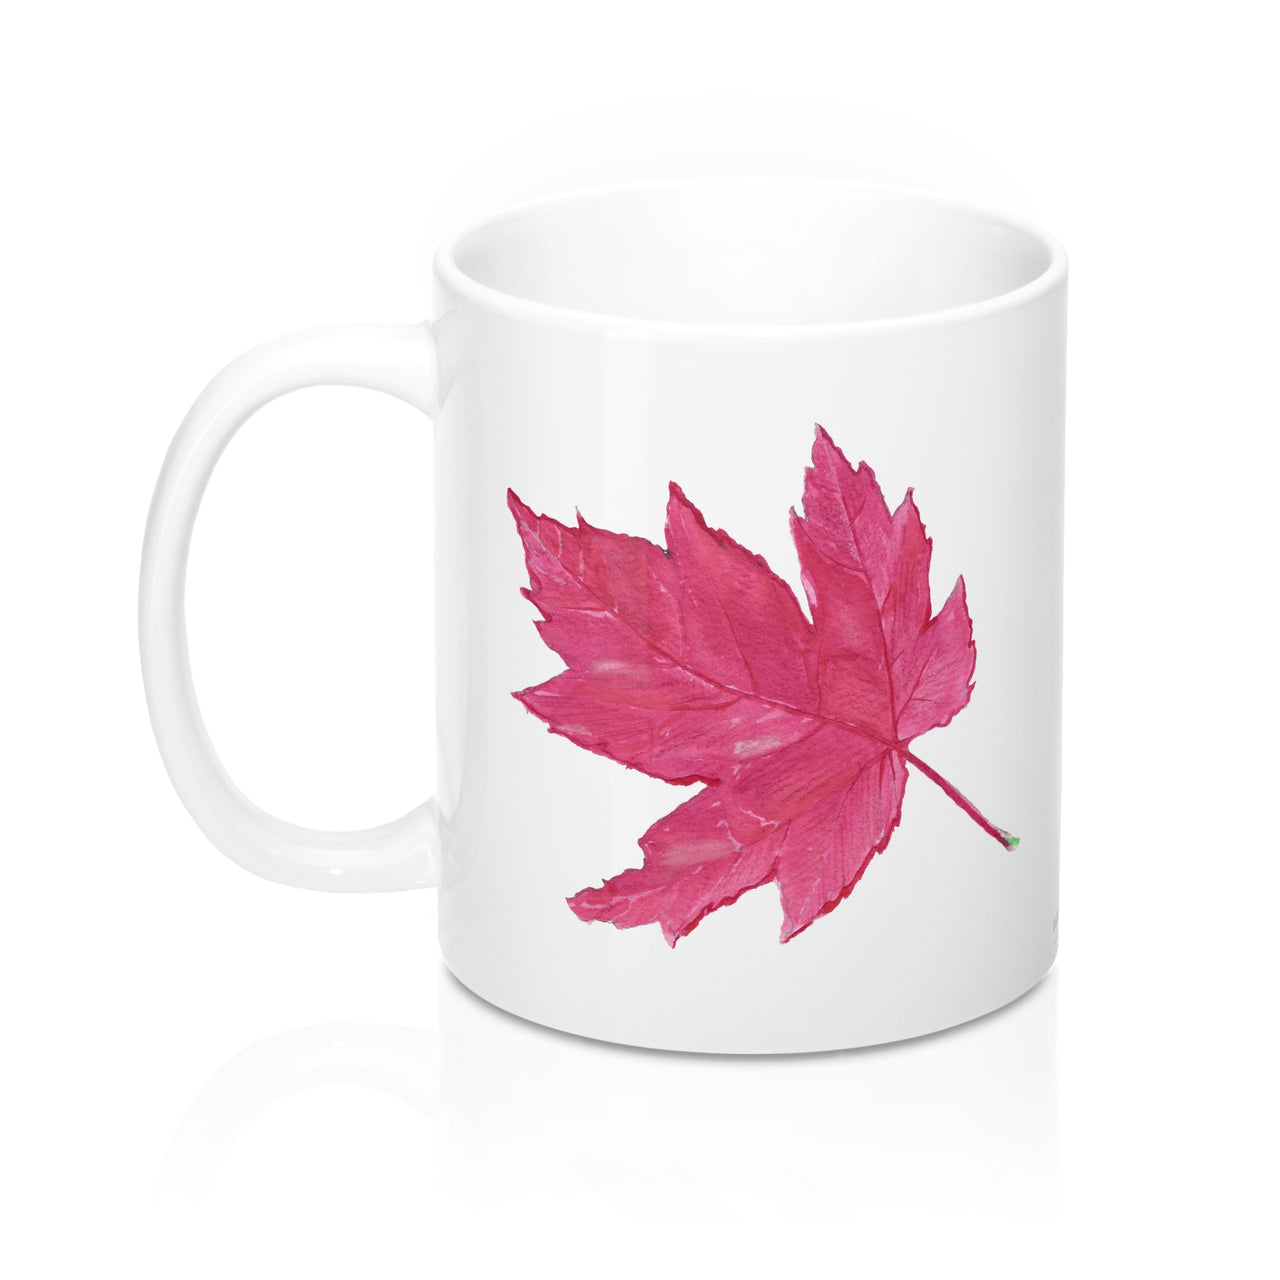 Coffee Mug - Red Maple Leaf - Falling Leaf Card Co.